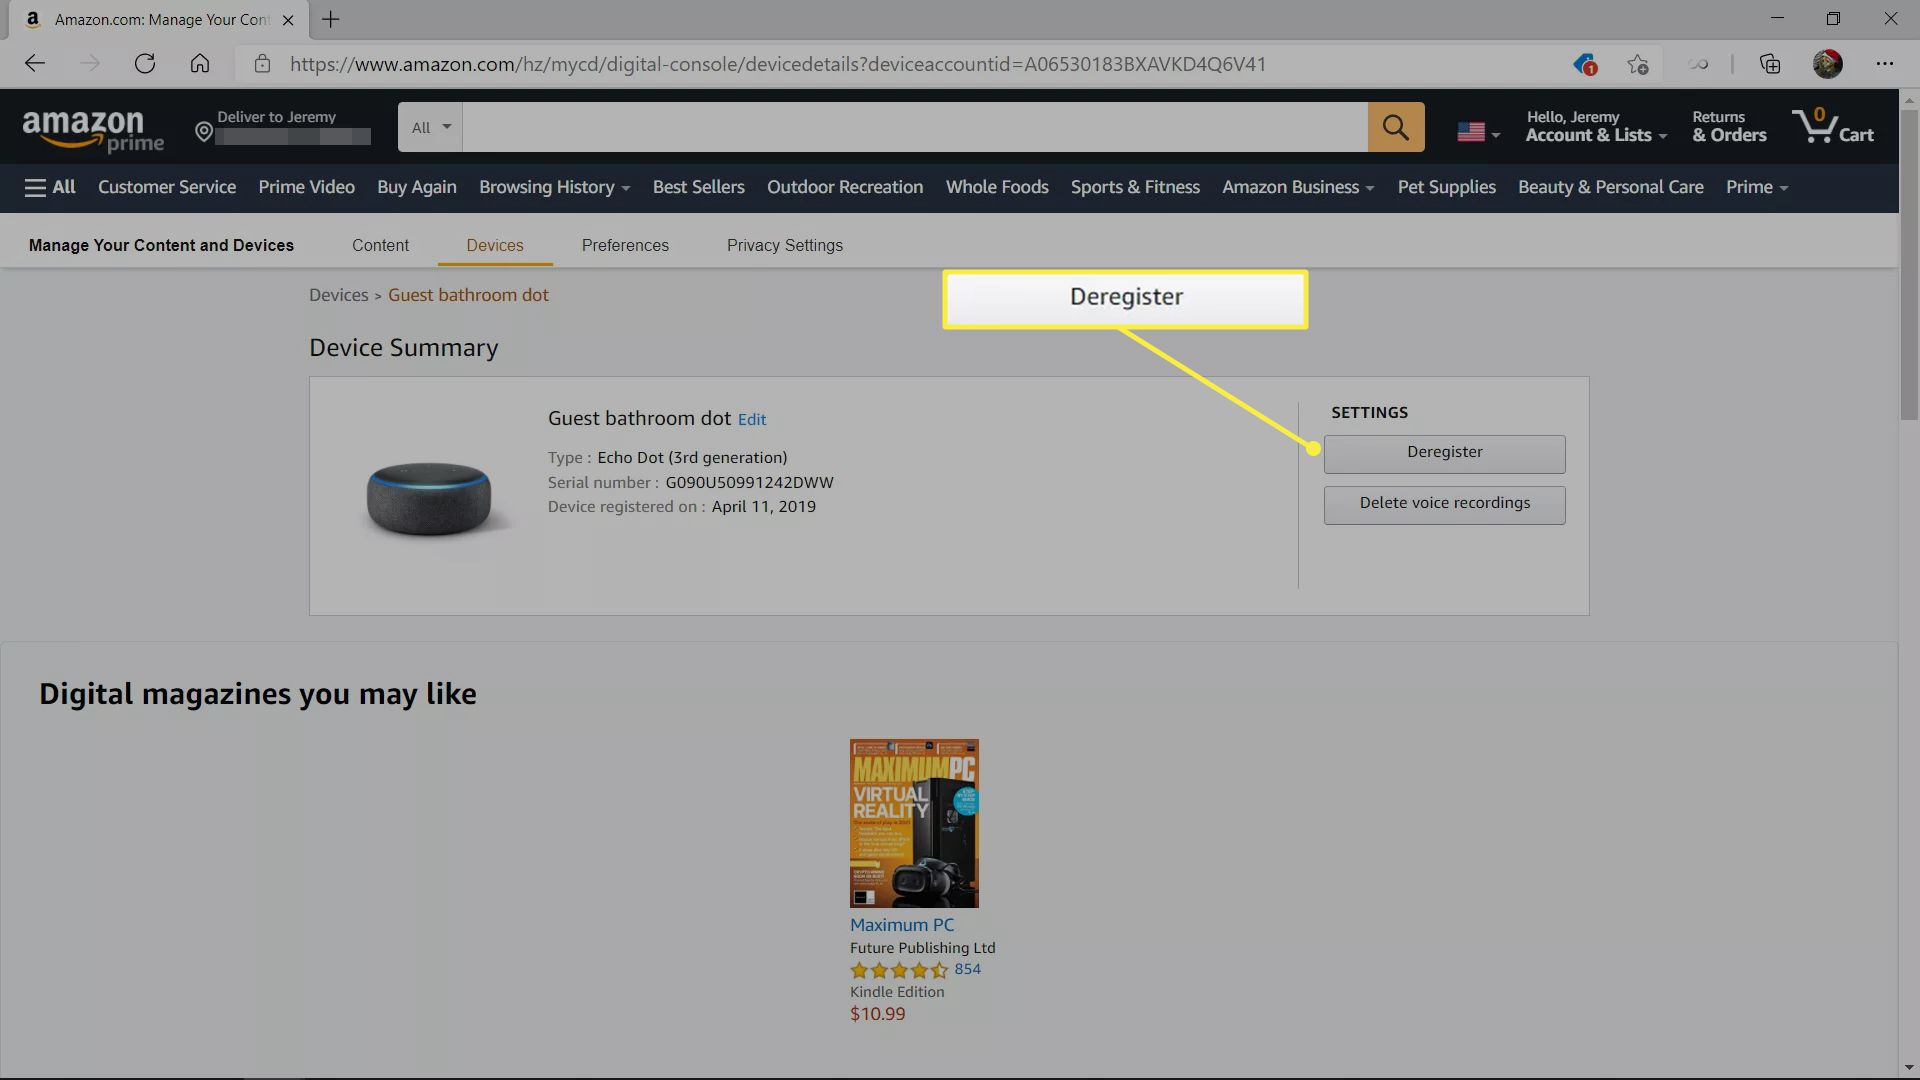 Deregister highlighted on an Amazon device management page.